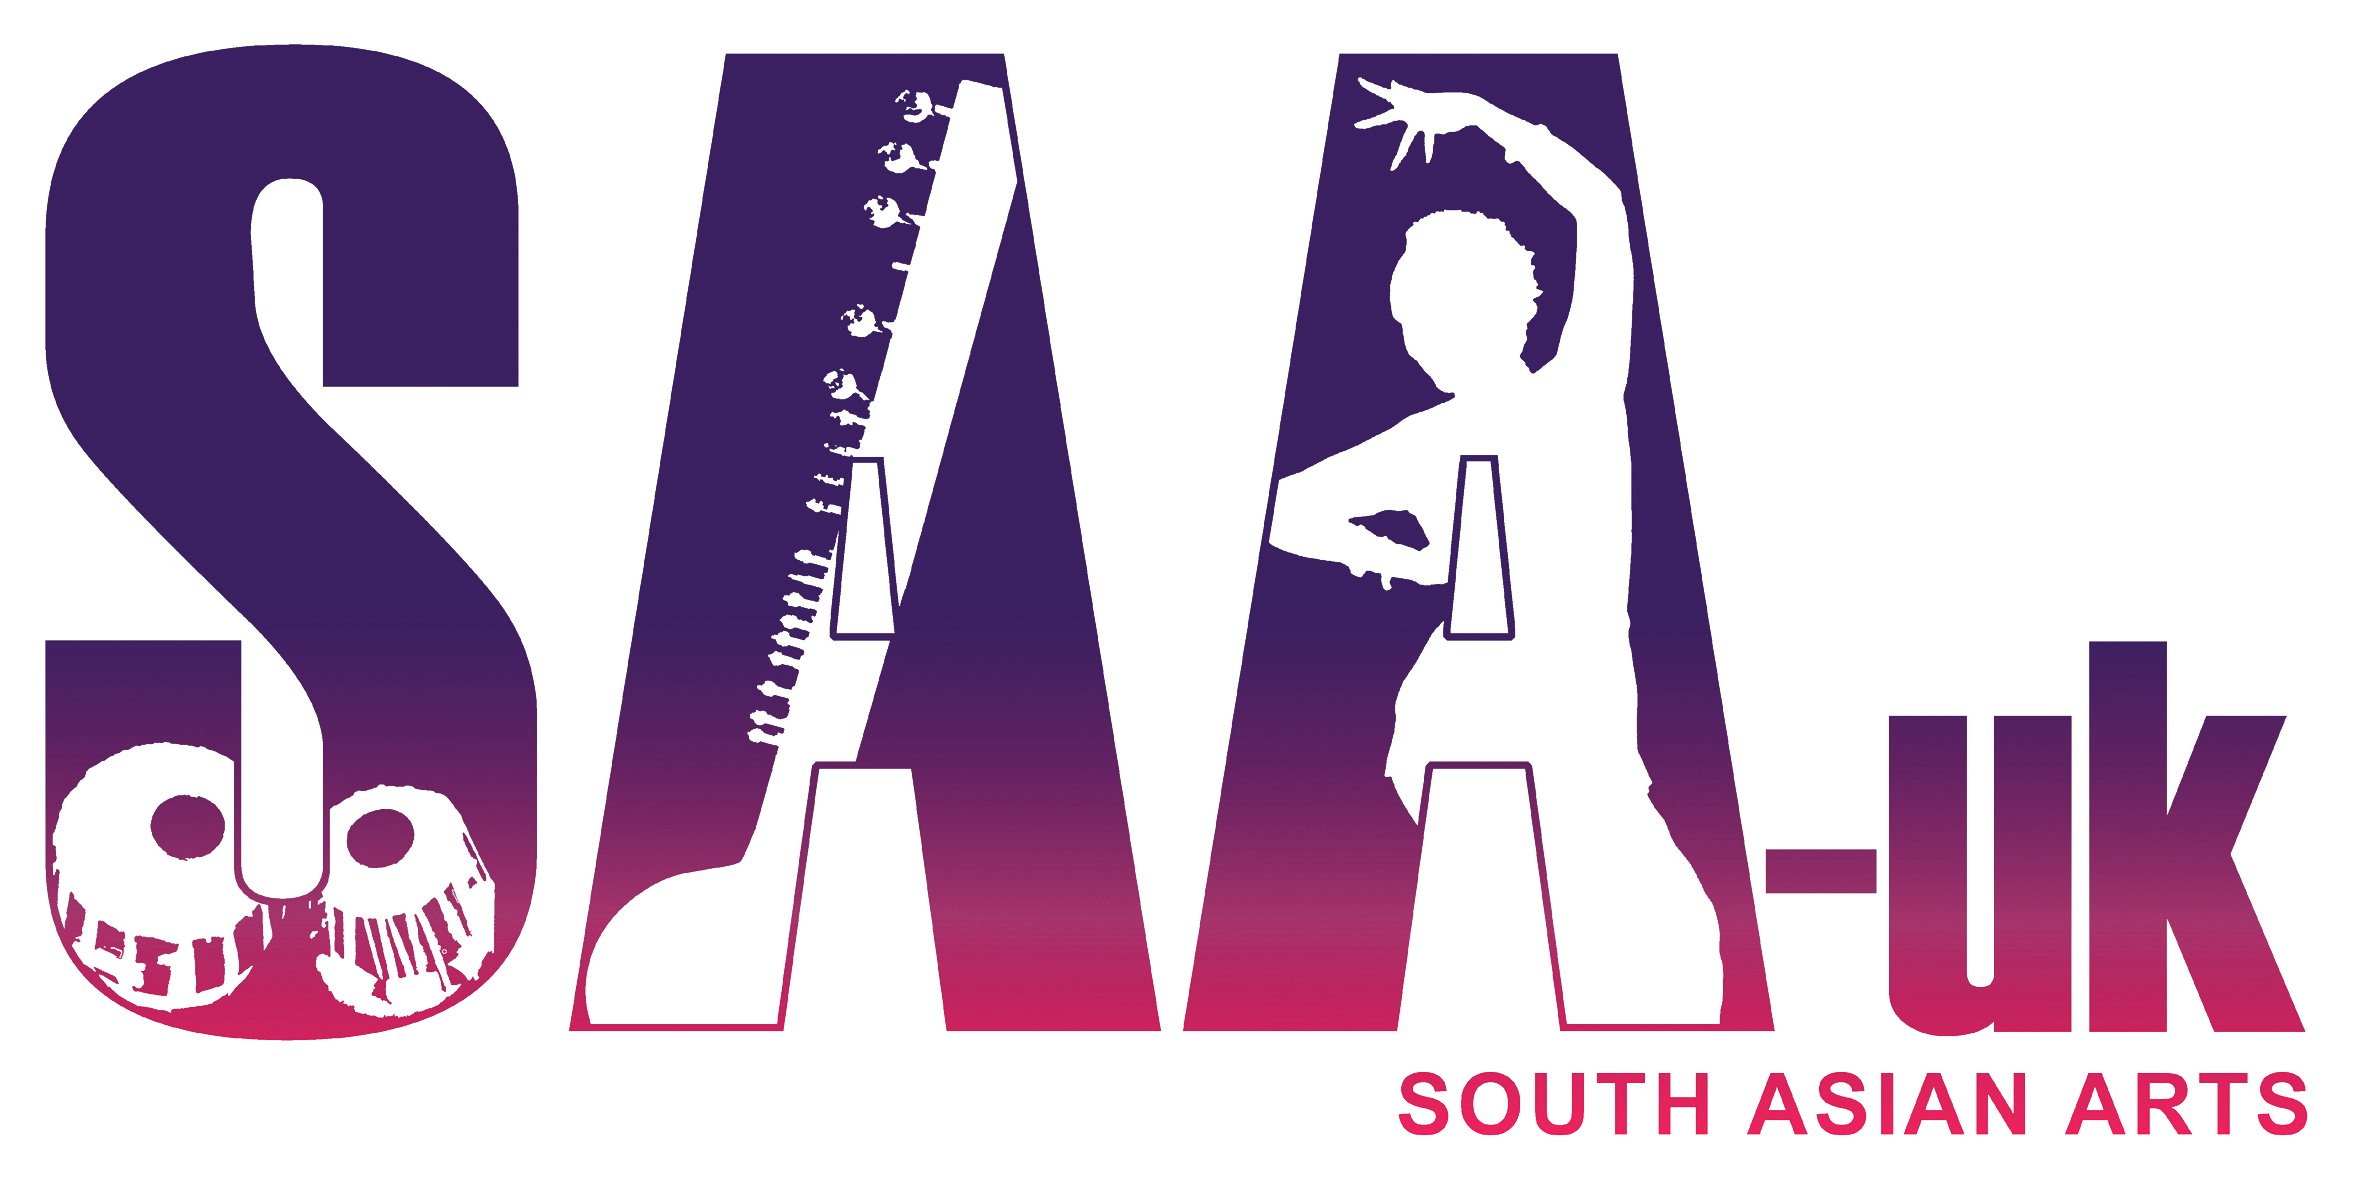 SAA-uk-logo.png